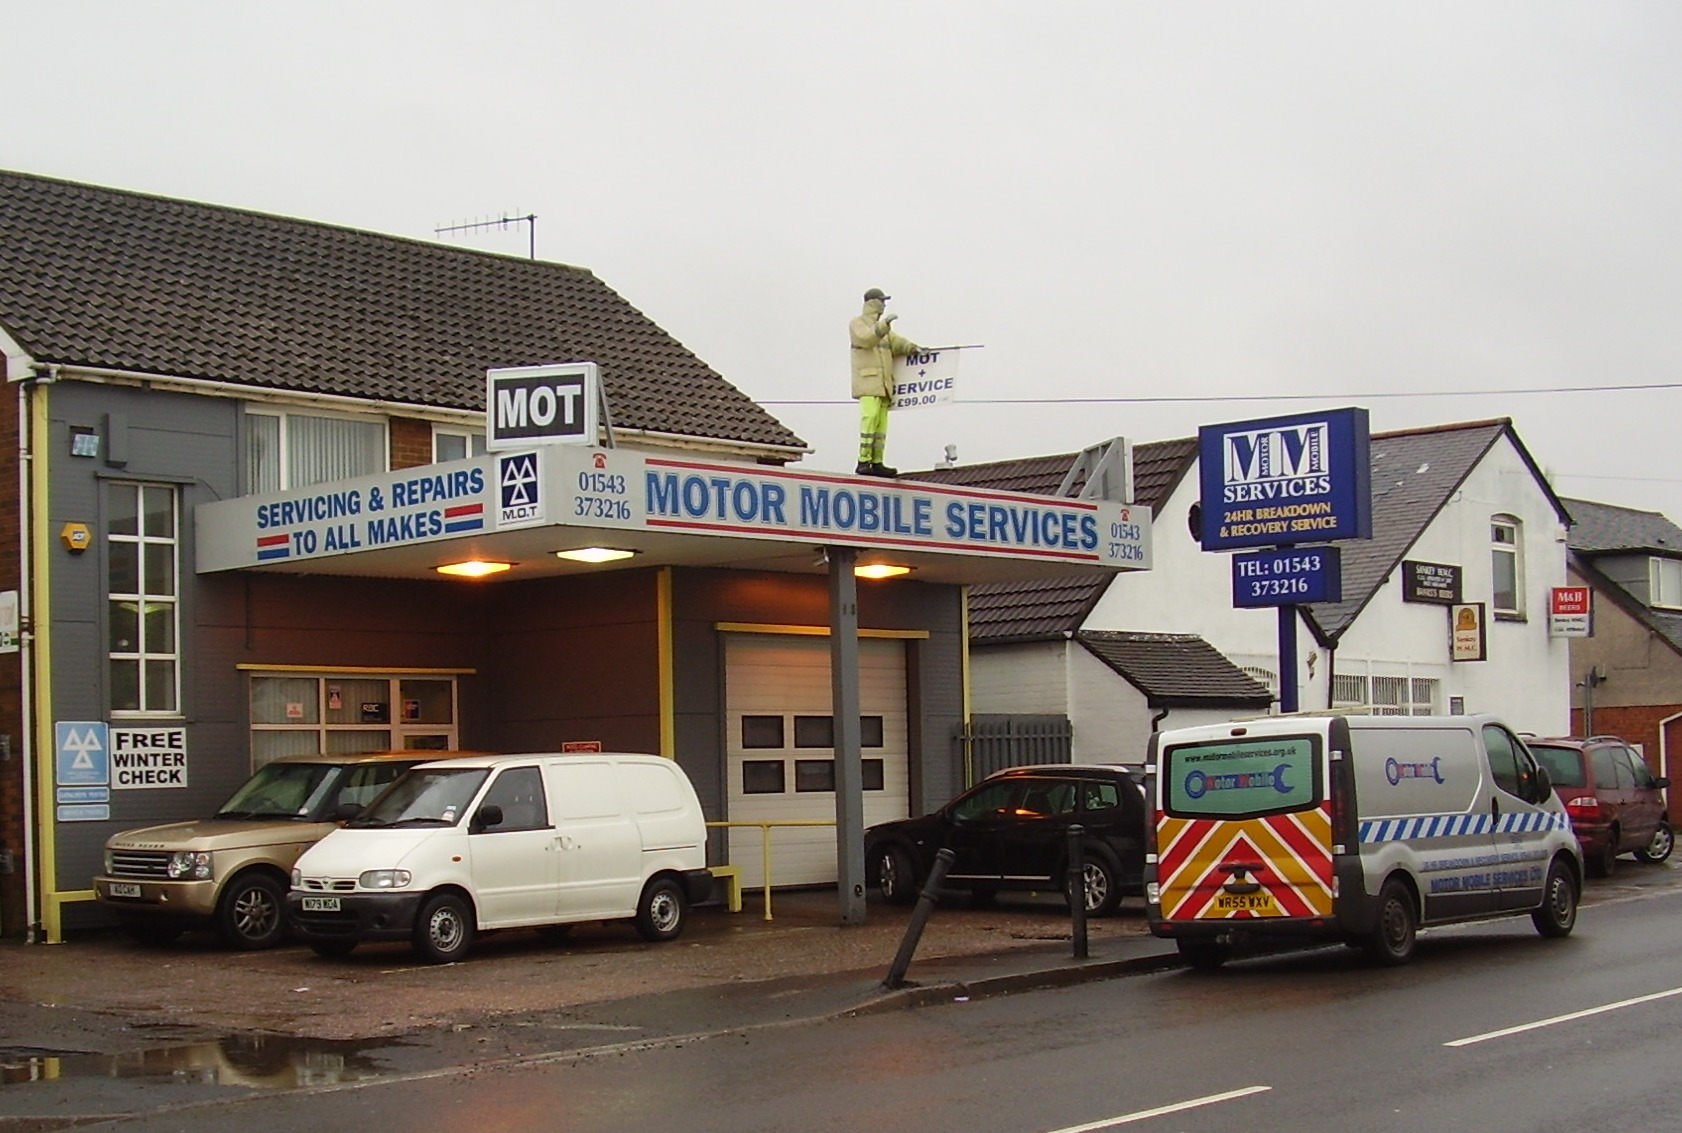 Boston Garage Mot Lost Petrol Stations In Walsall Wood And Brownhills